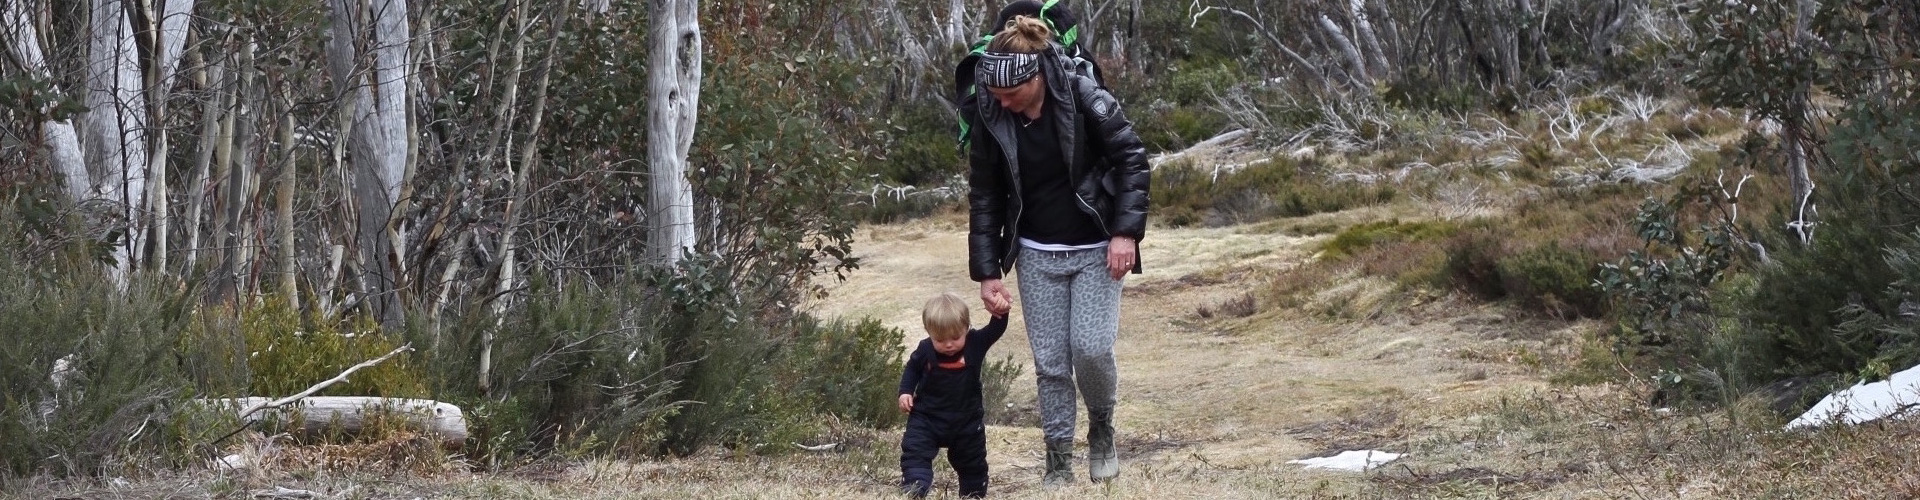 family bush walking hotham